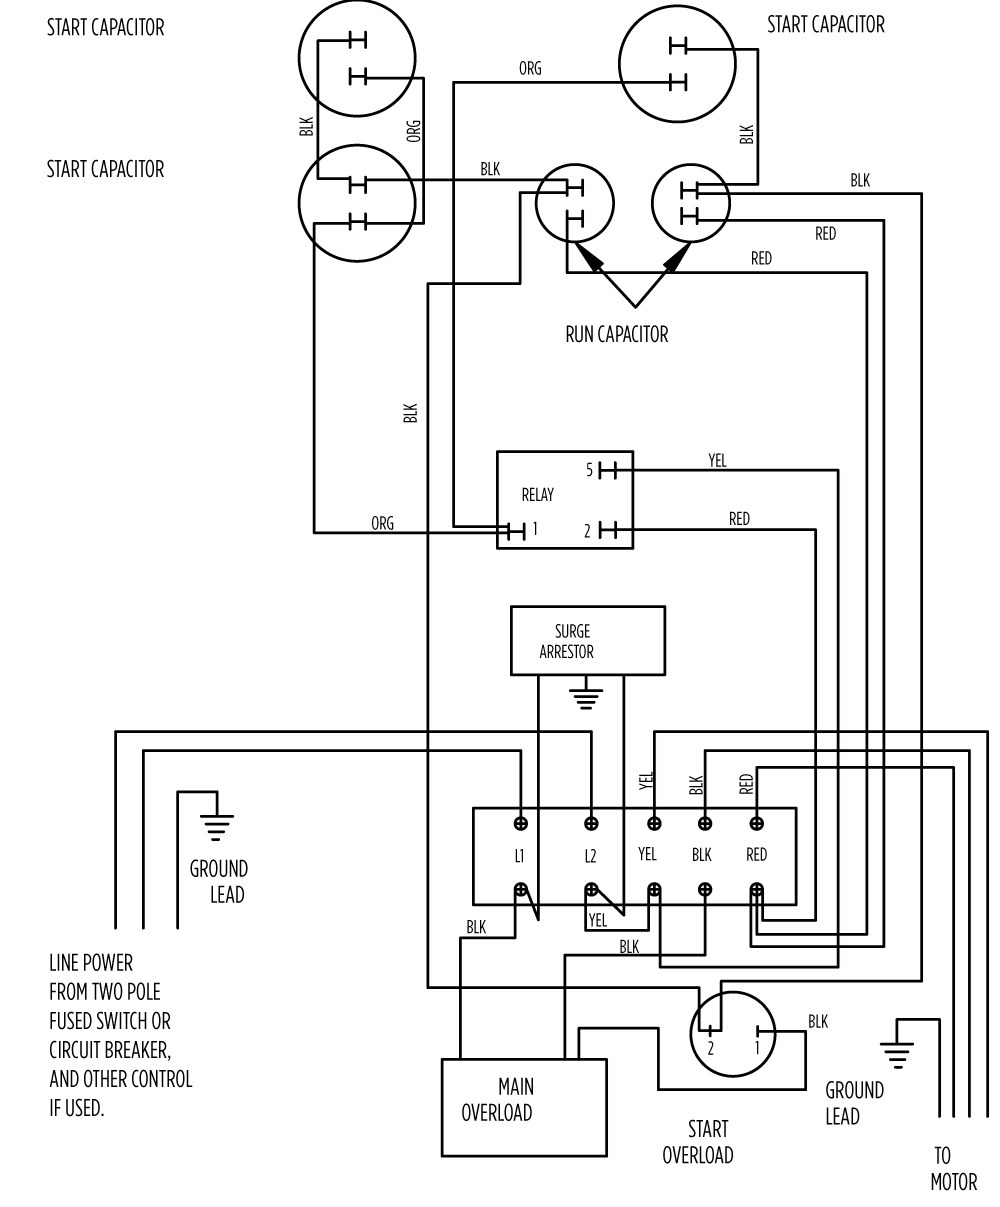 10 hp baldor motor wiring diagram just wiring diagram 10 hp motor wiring diagram wiring diagram [ 1000 x 1207 Pixel ]